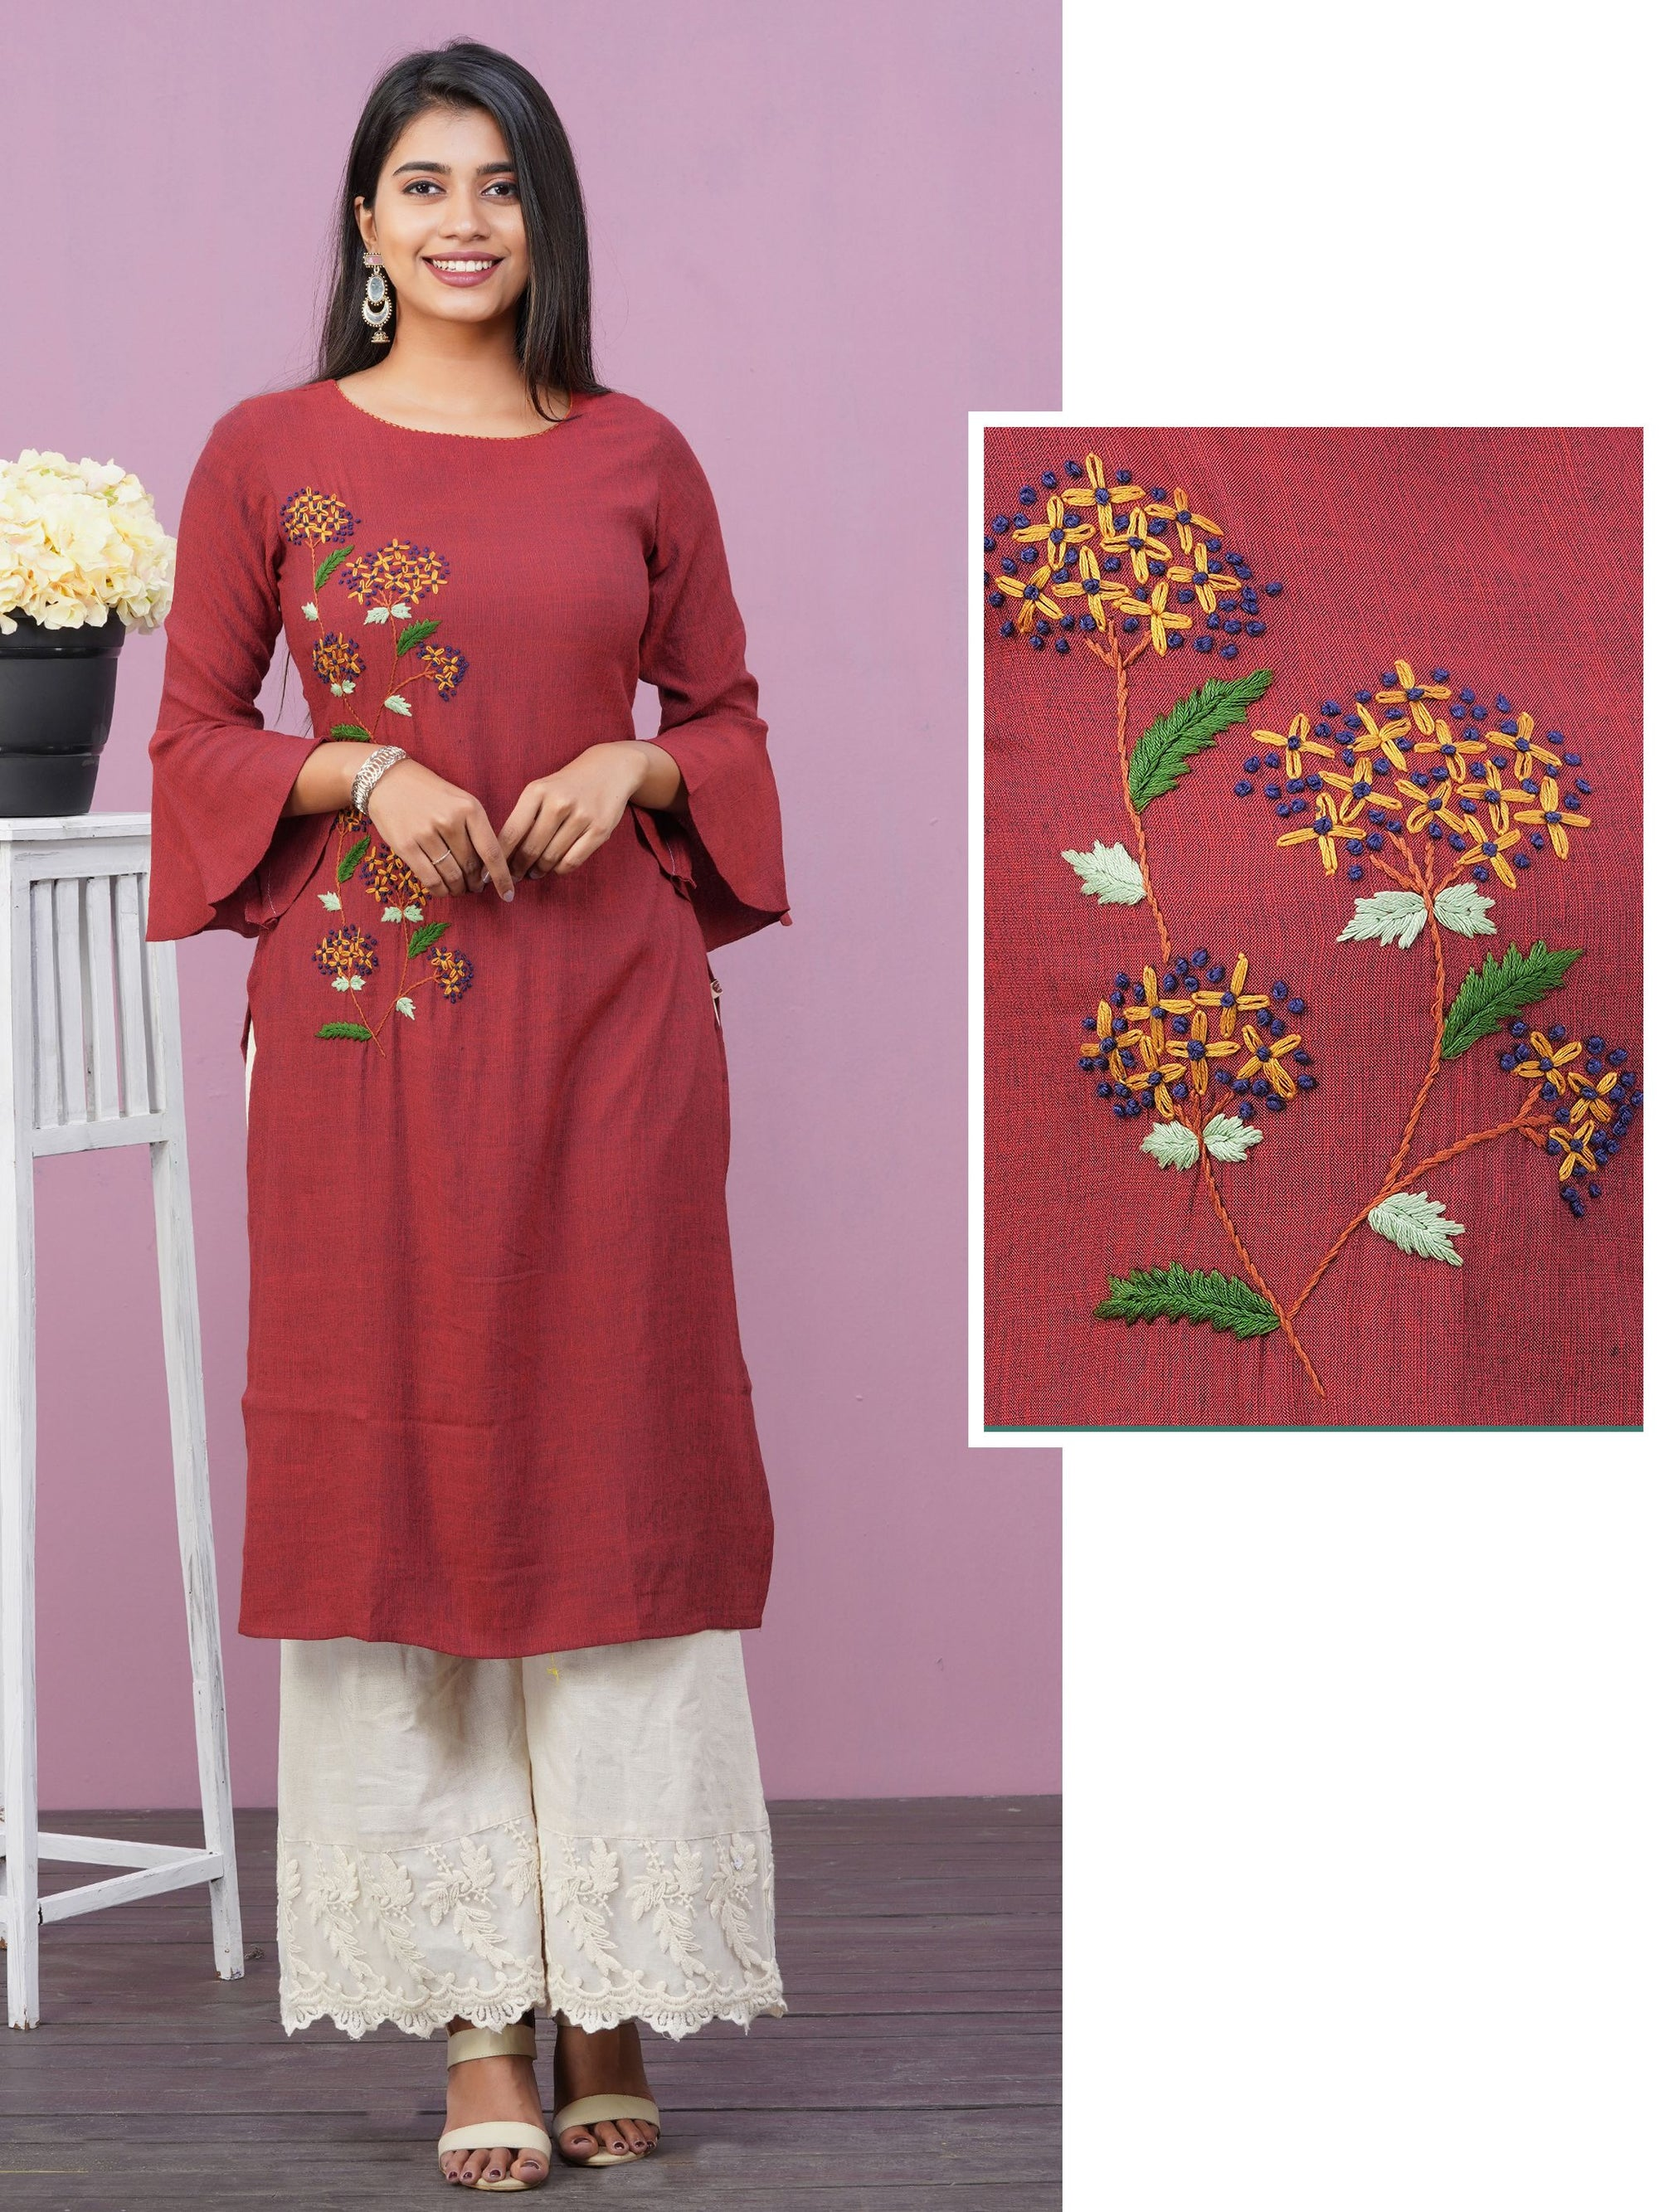 French Knot Floral Embroidered Cotton Kurti